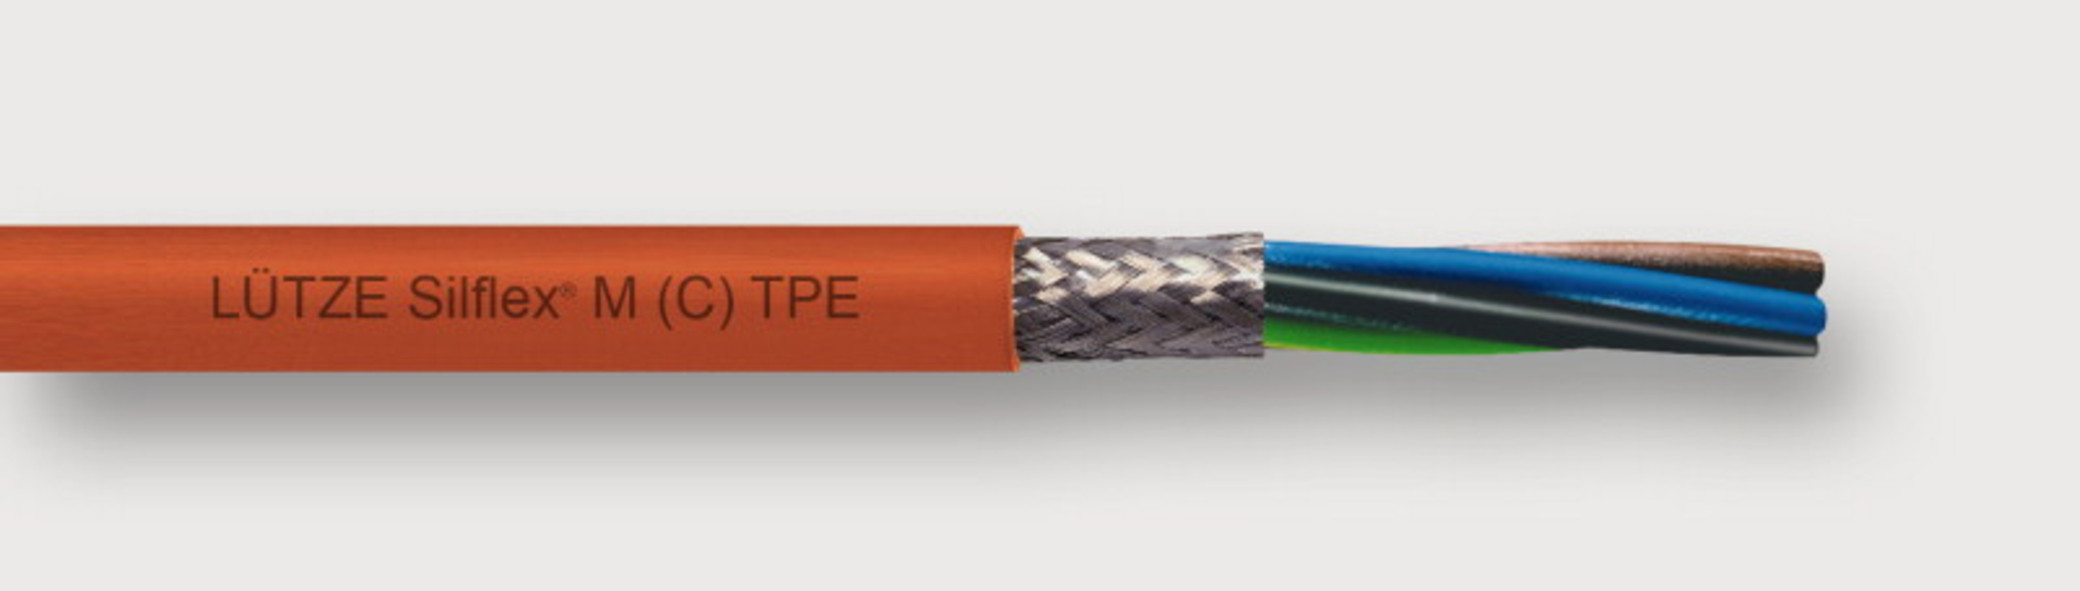 A3170604 - LÜTZE SILFLEX® M (C) TPE POWER TRAY CABLE Flexible Motor Cable for Allen-Bradley and other systems